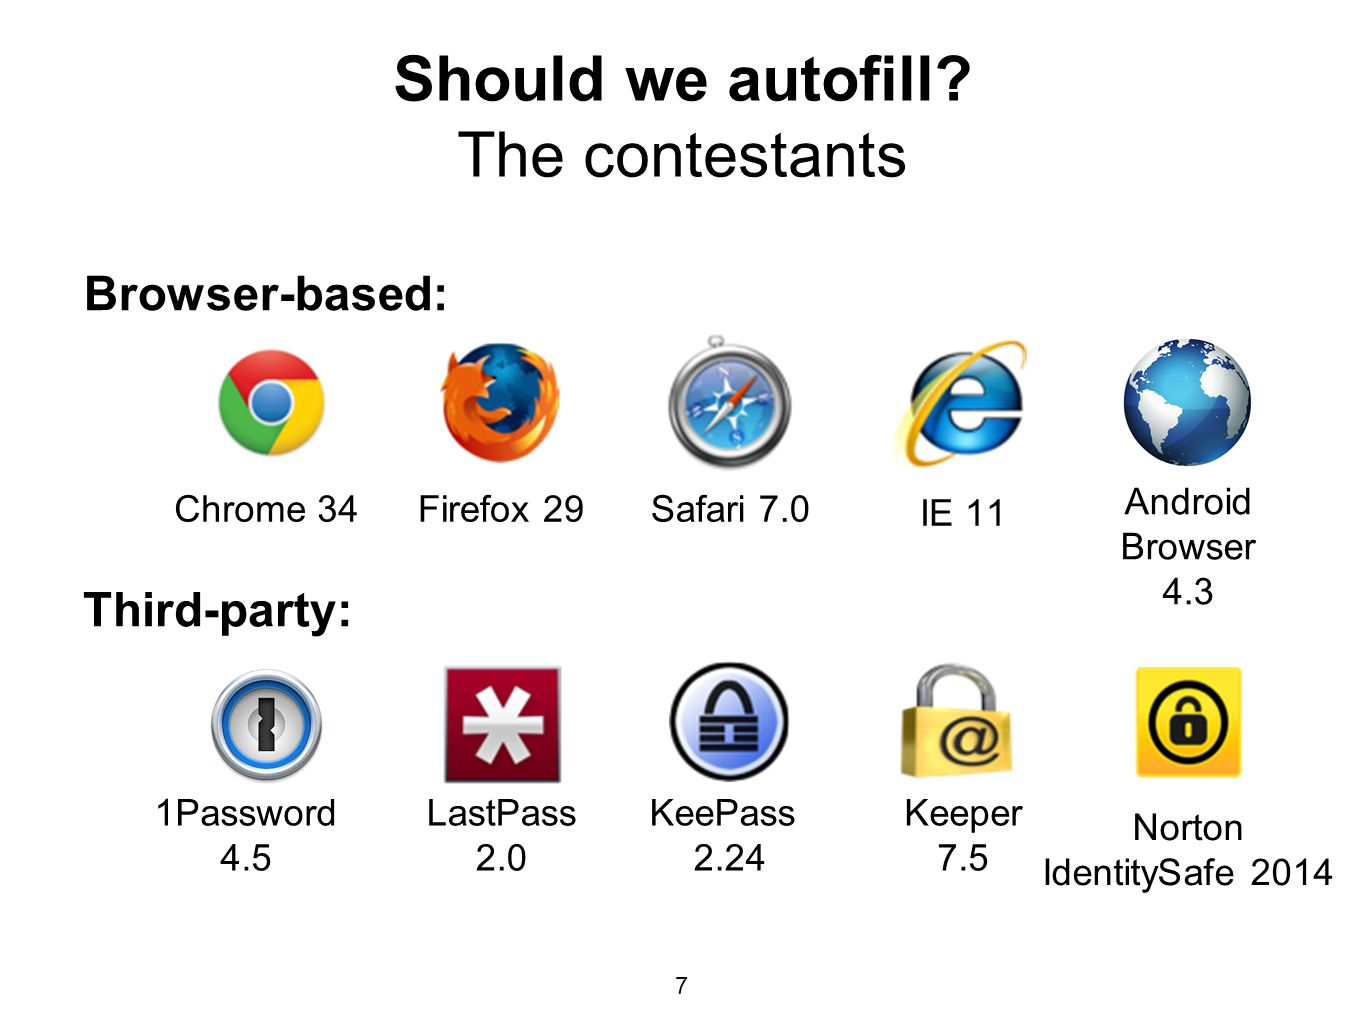 Should we autofill? The contestants 7 Browser-based: Chrome 34Firefox 29Safari 7.0 IE 11 Android Browser 4.3 Third-party: LastPass 2.0 Norton Identity